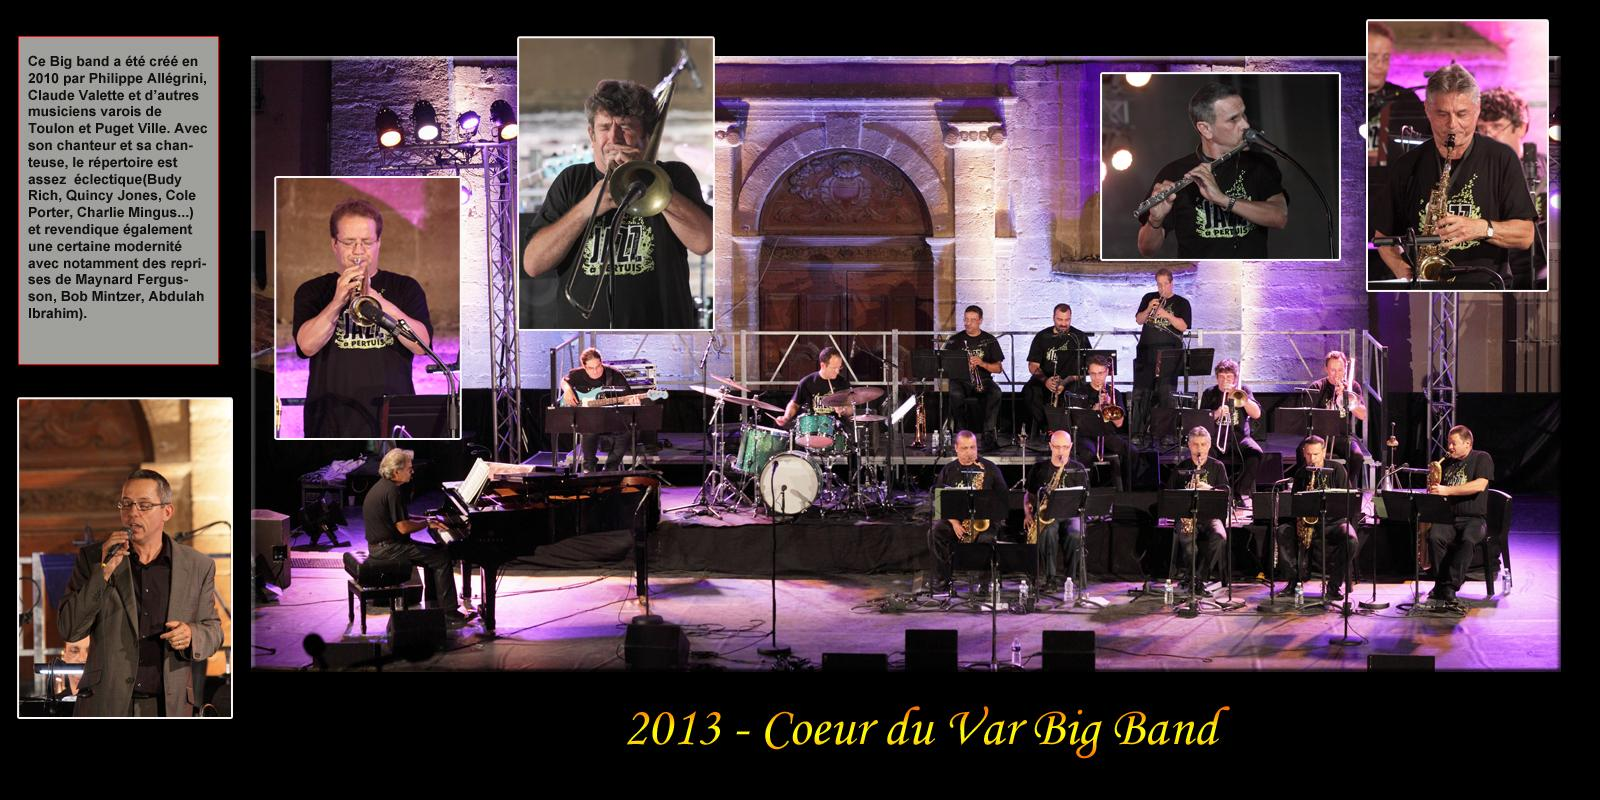 2013-Coeur du var Big Band